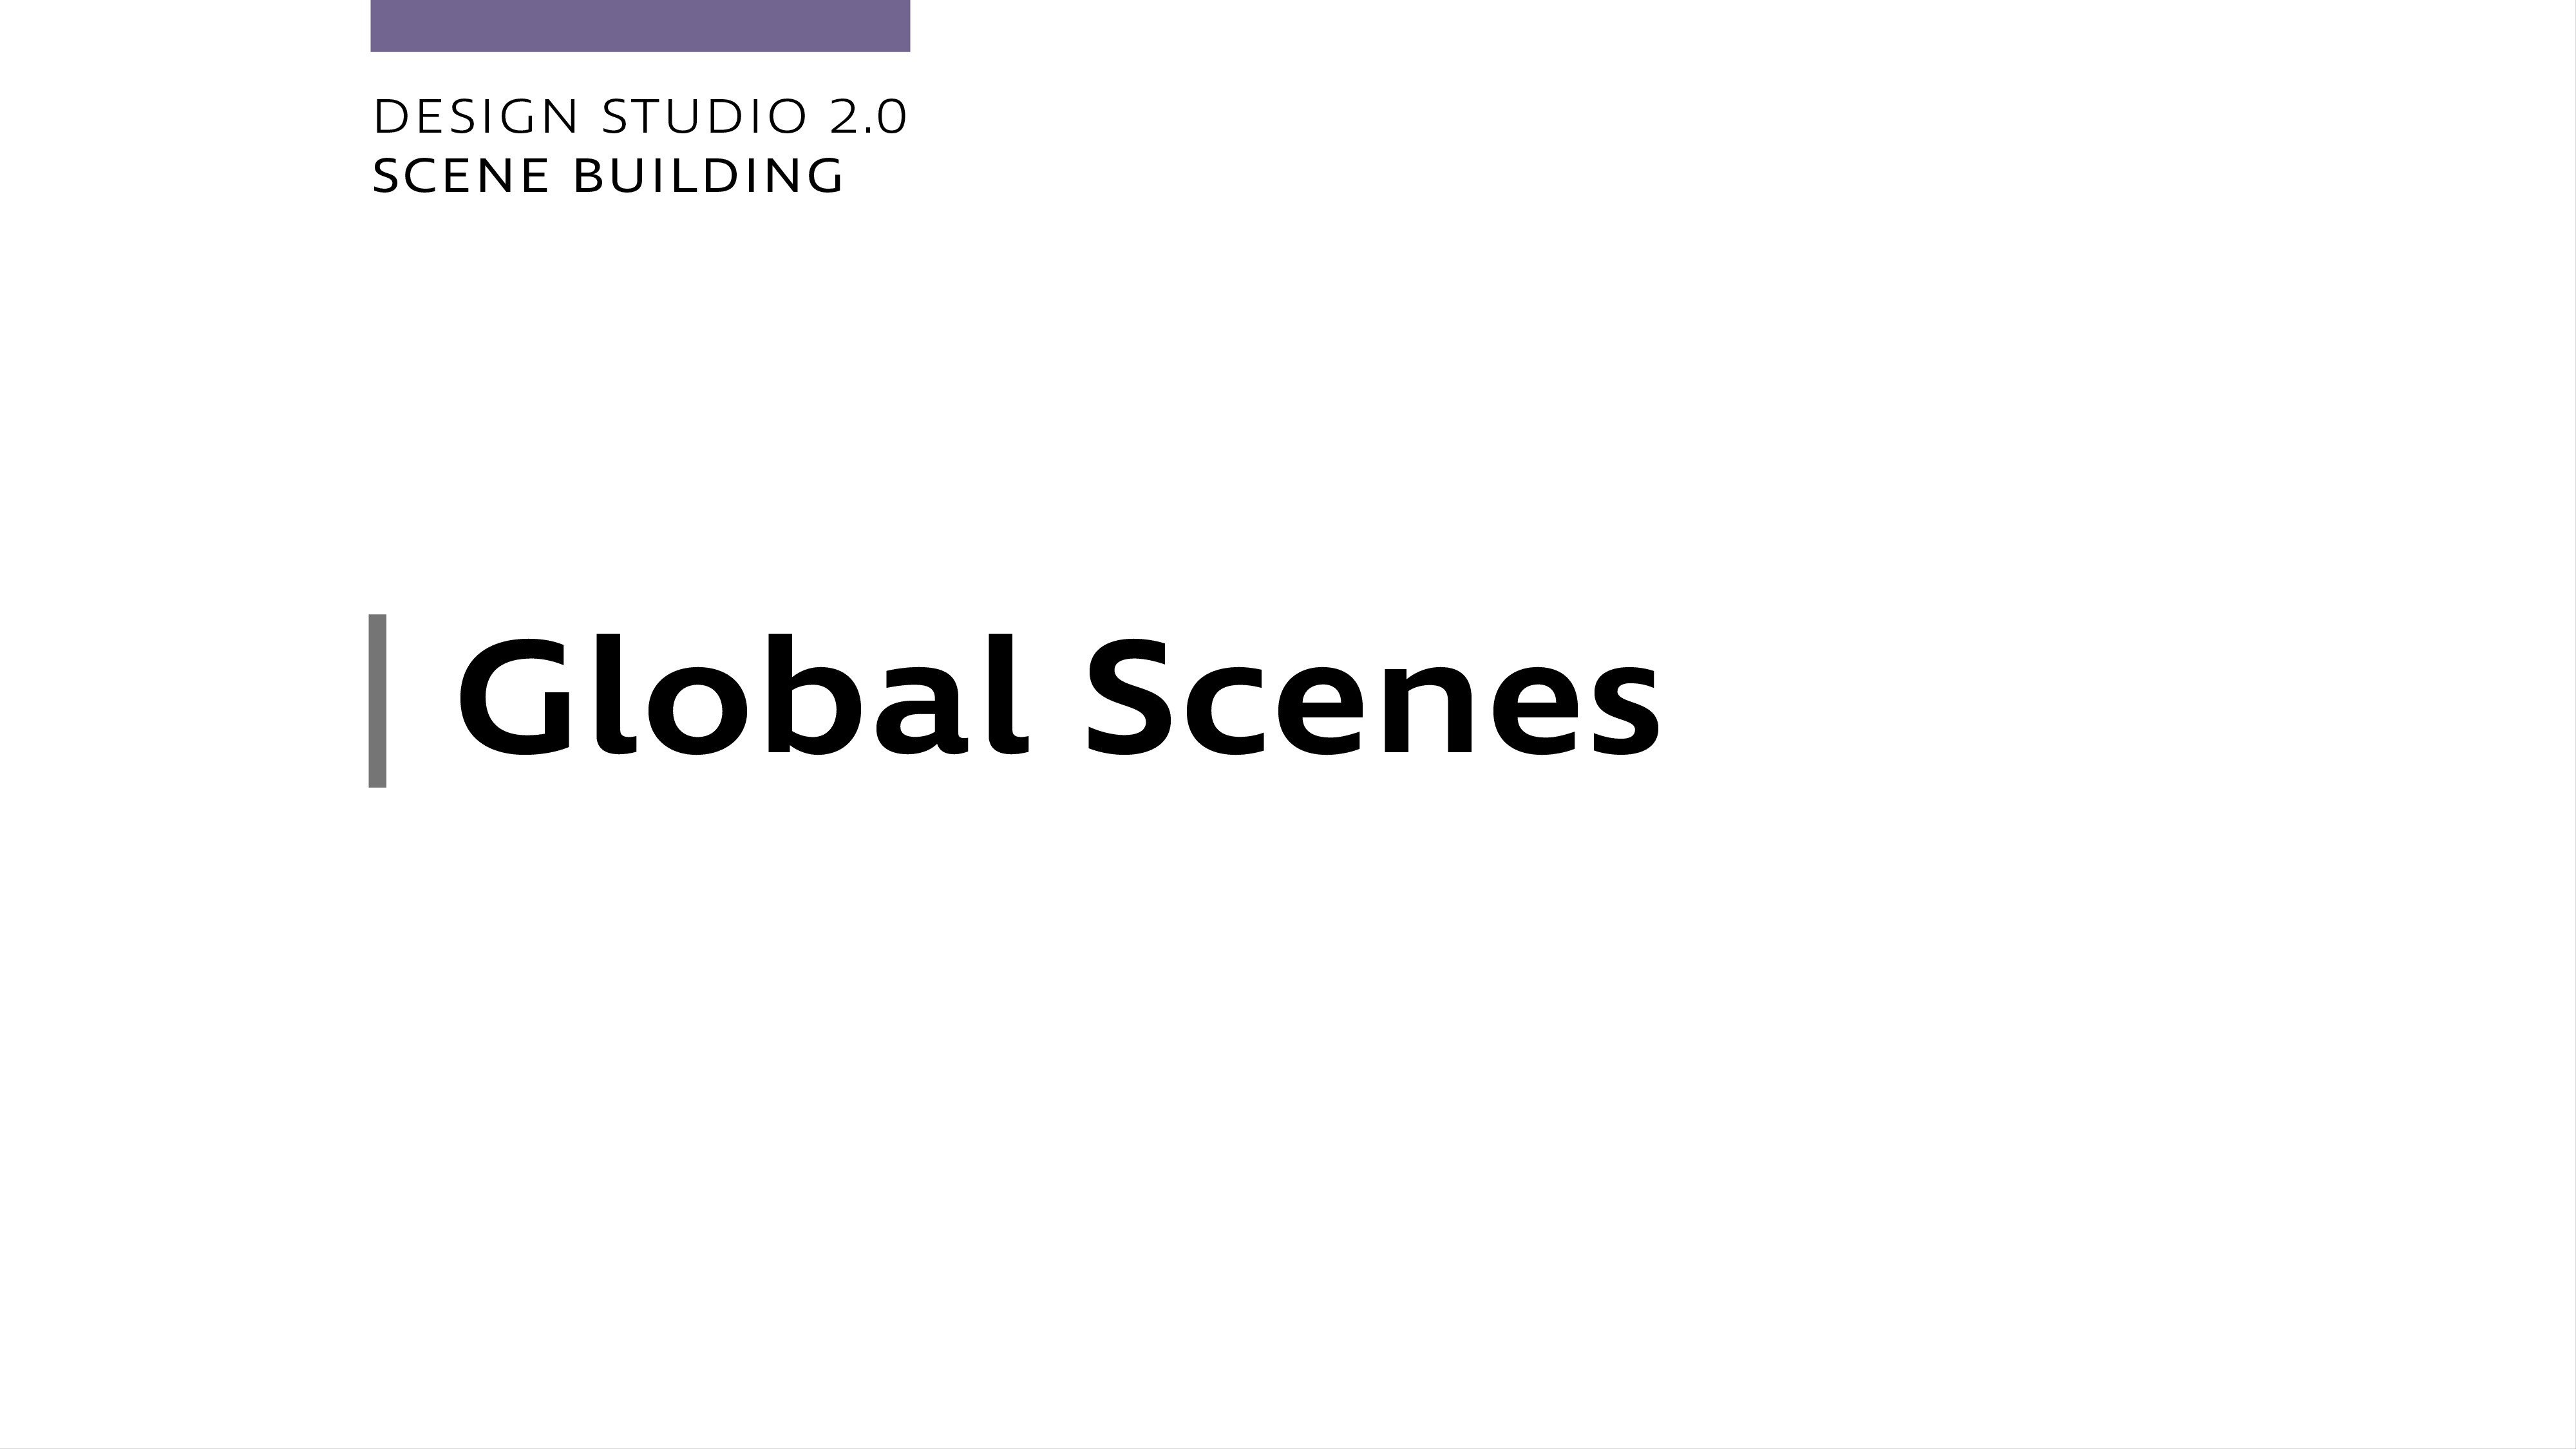 Design Studio 2.0 - Global Scenes